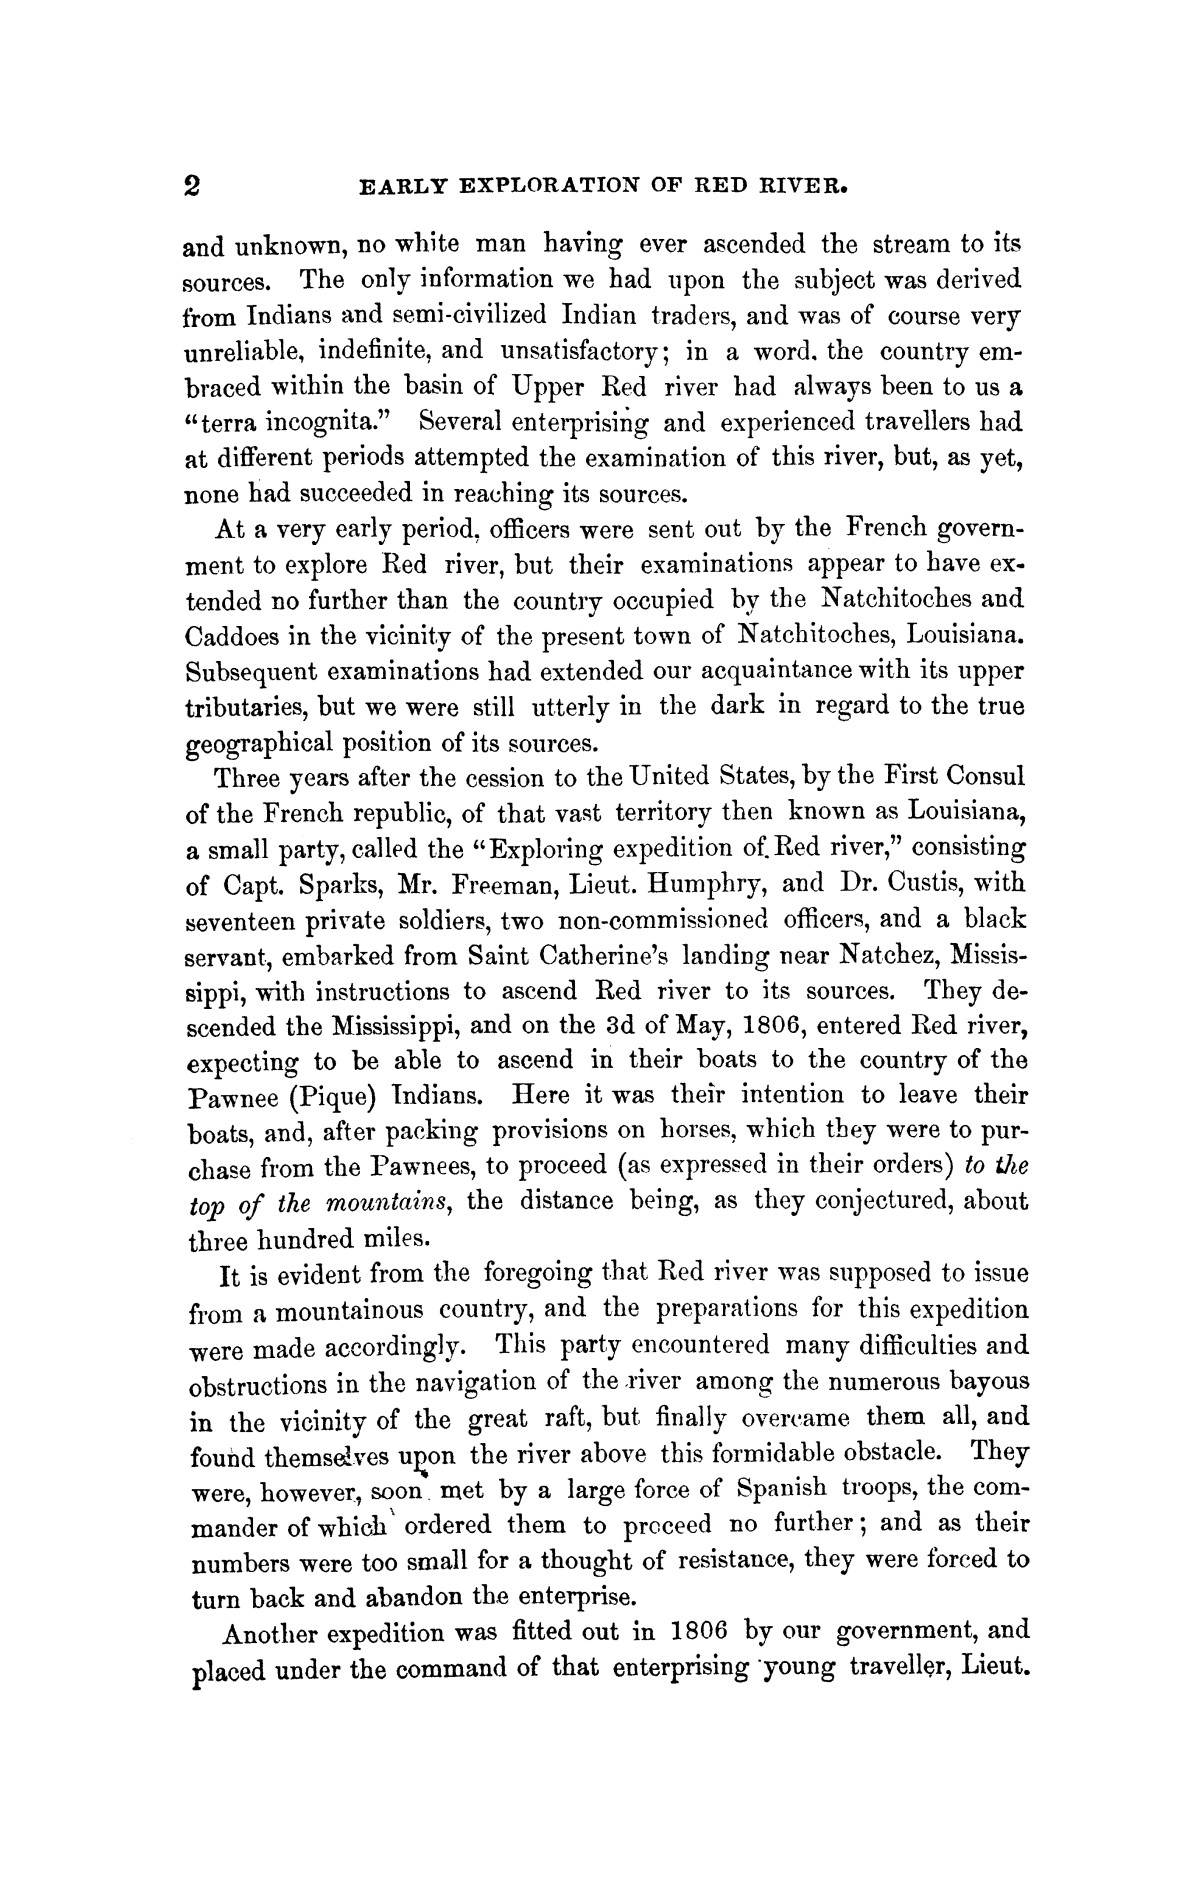 Exploration of the Red River of Louisiana, in the year 1852 / by Randolph B. Marcy ; assisted by George B. McClellan.                                                                                                      [Sequence #]: 18 of 368